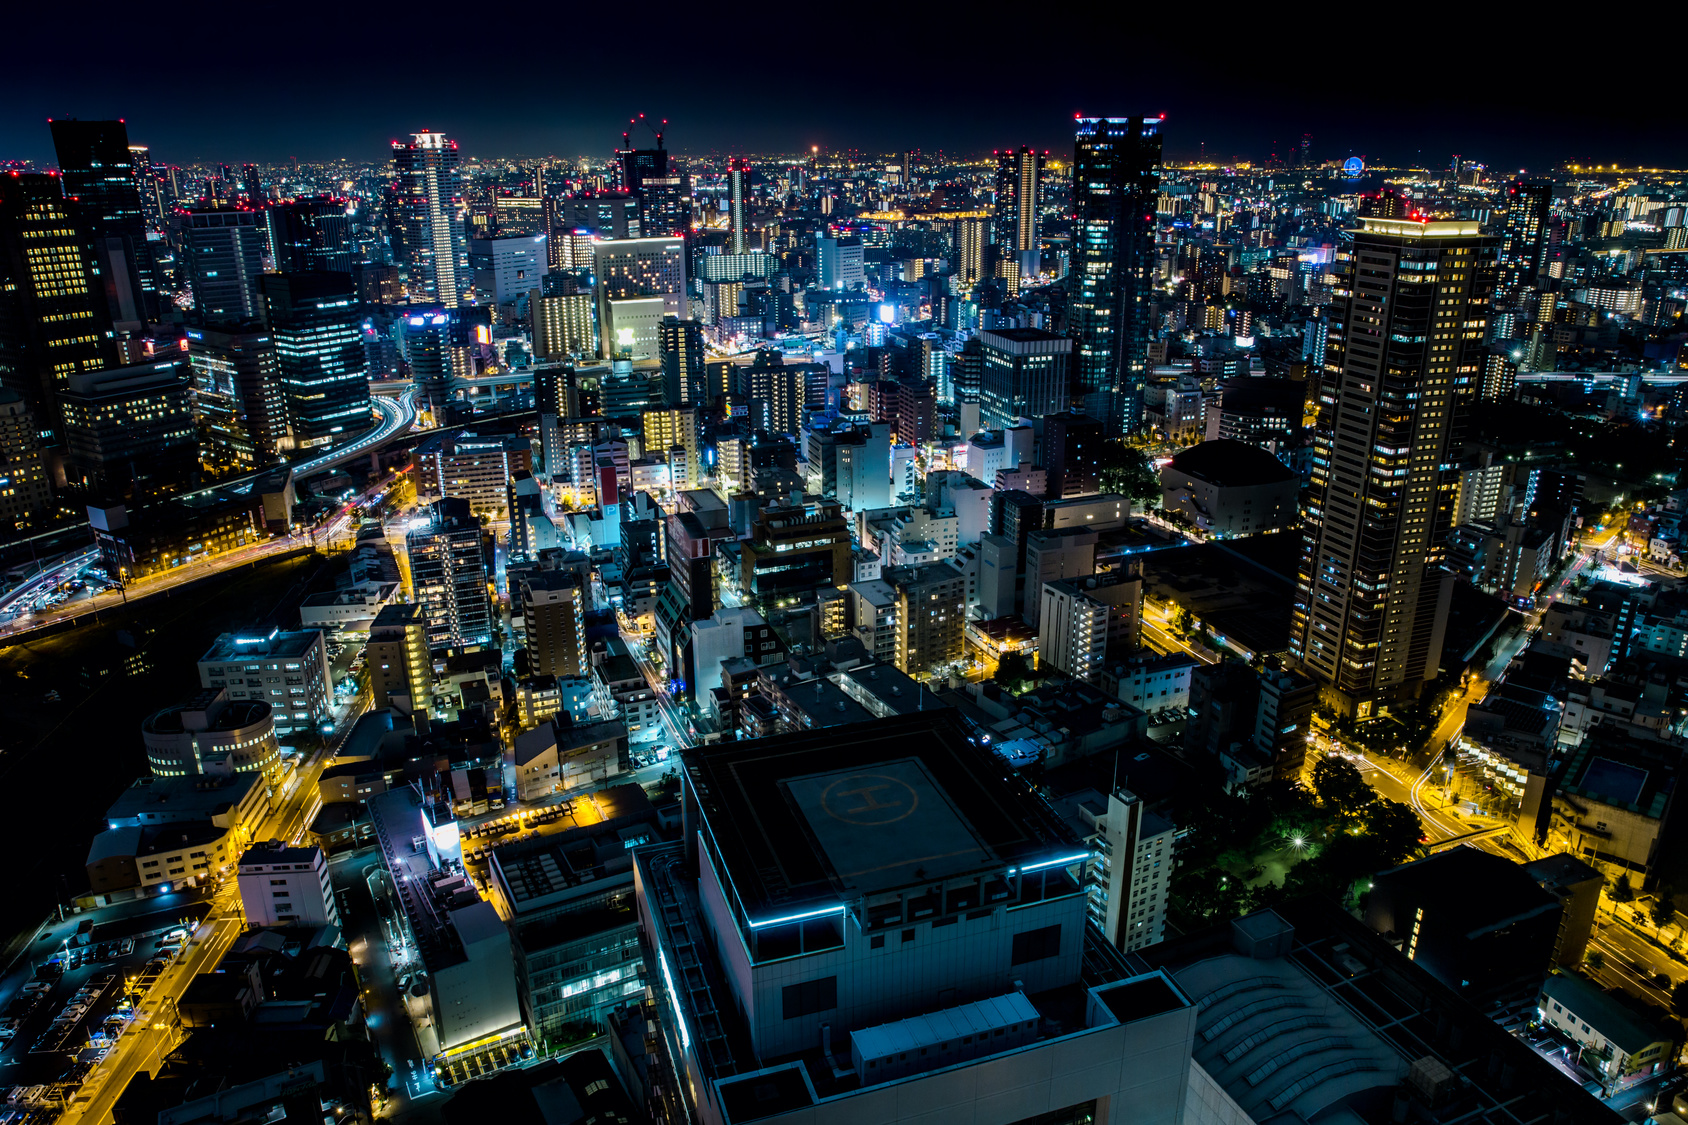 Osaka cityscape at night